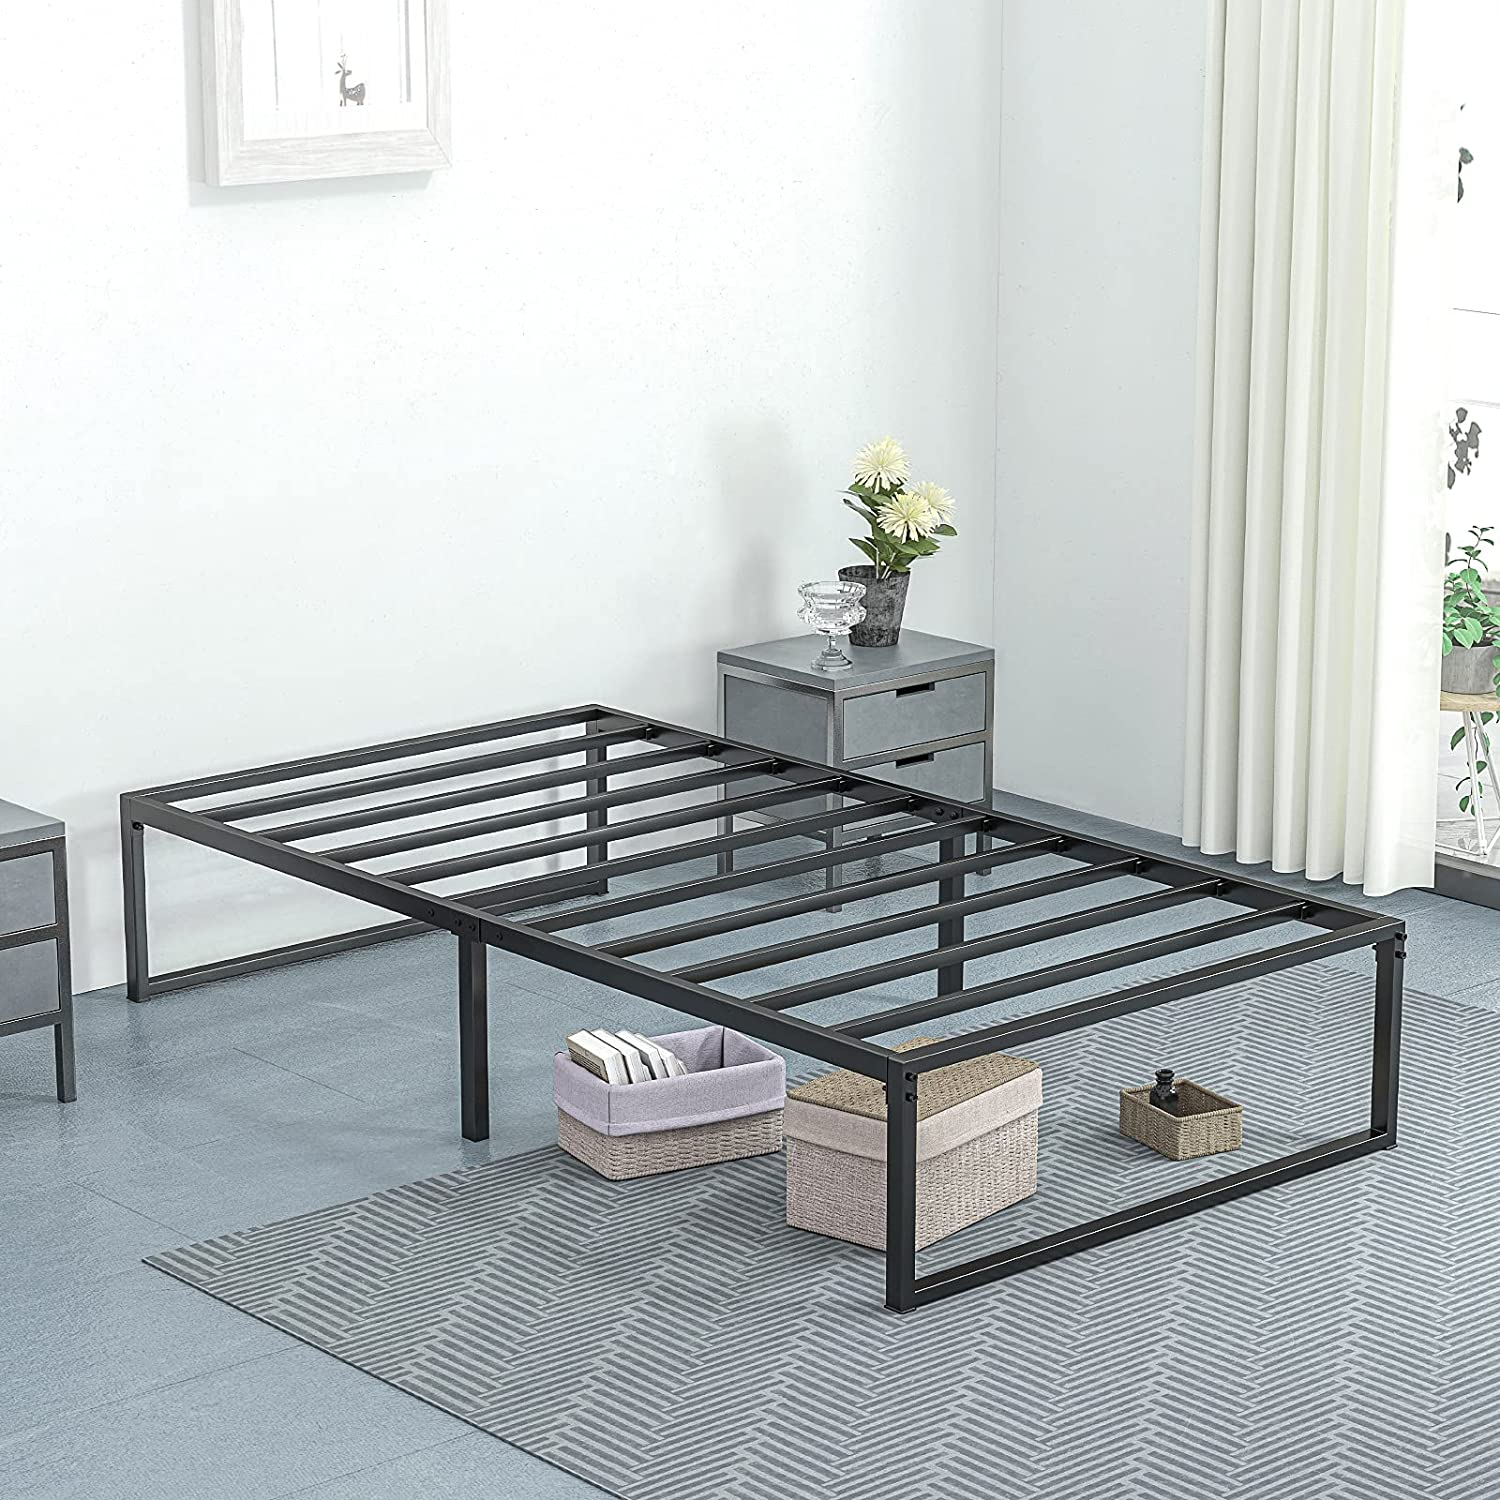 Ssecretland 14 Inch Twin Size Bed Frame Metal Platform and Anti-Slip Bed Frame for Noise Free with Underbed Storage Heavy Duty and Easy Assembly Mattress Frame with Strong Support/No Box Spring Need: Kitchen & Dining